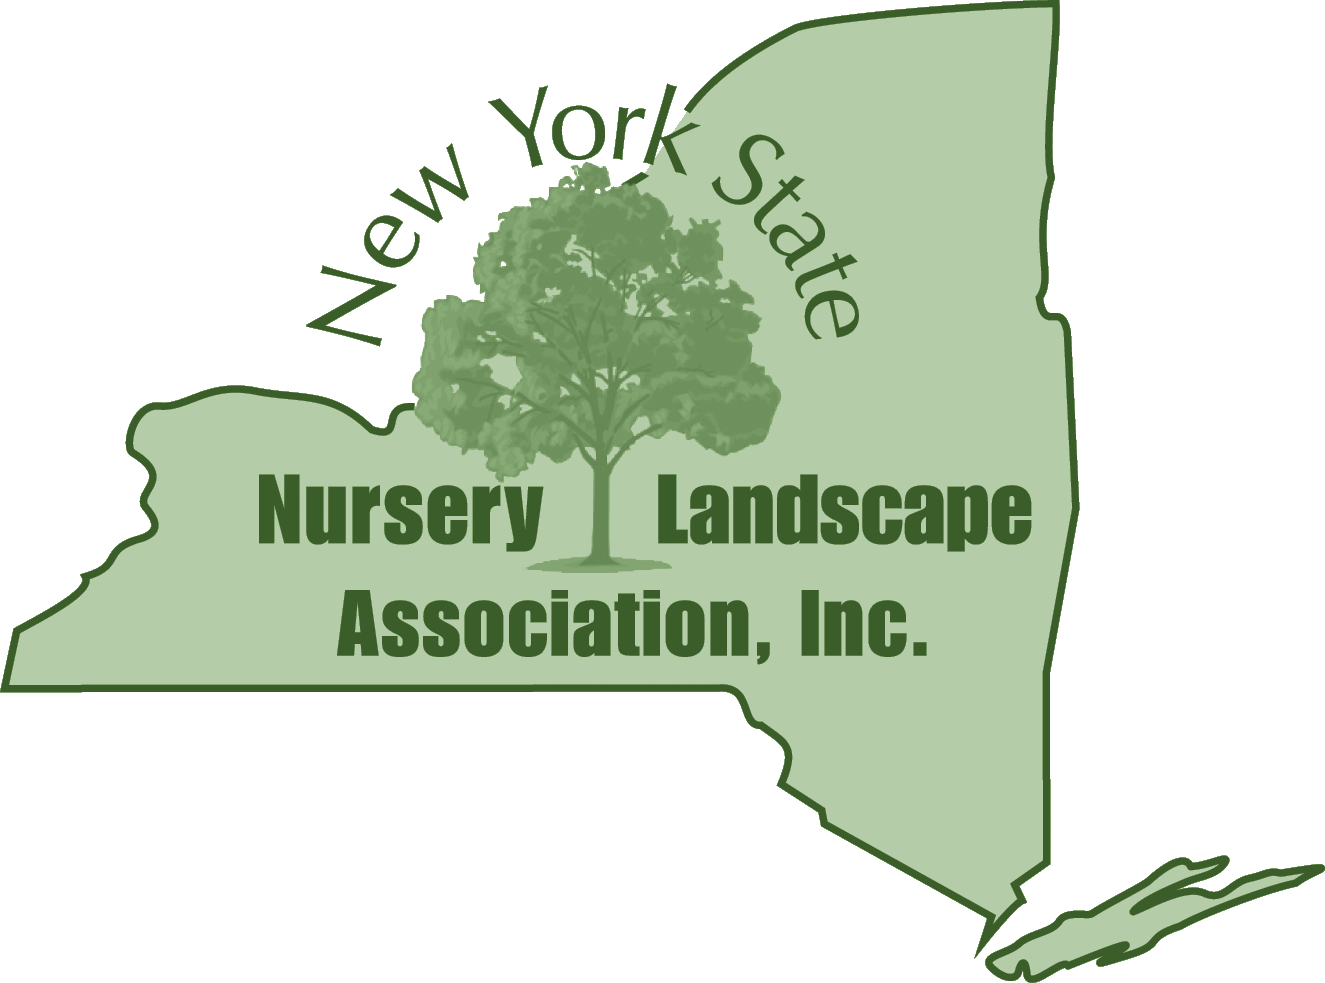 New York State Nursery & Landscape Association